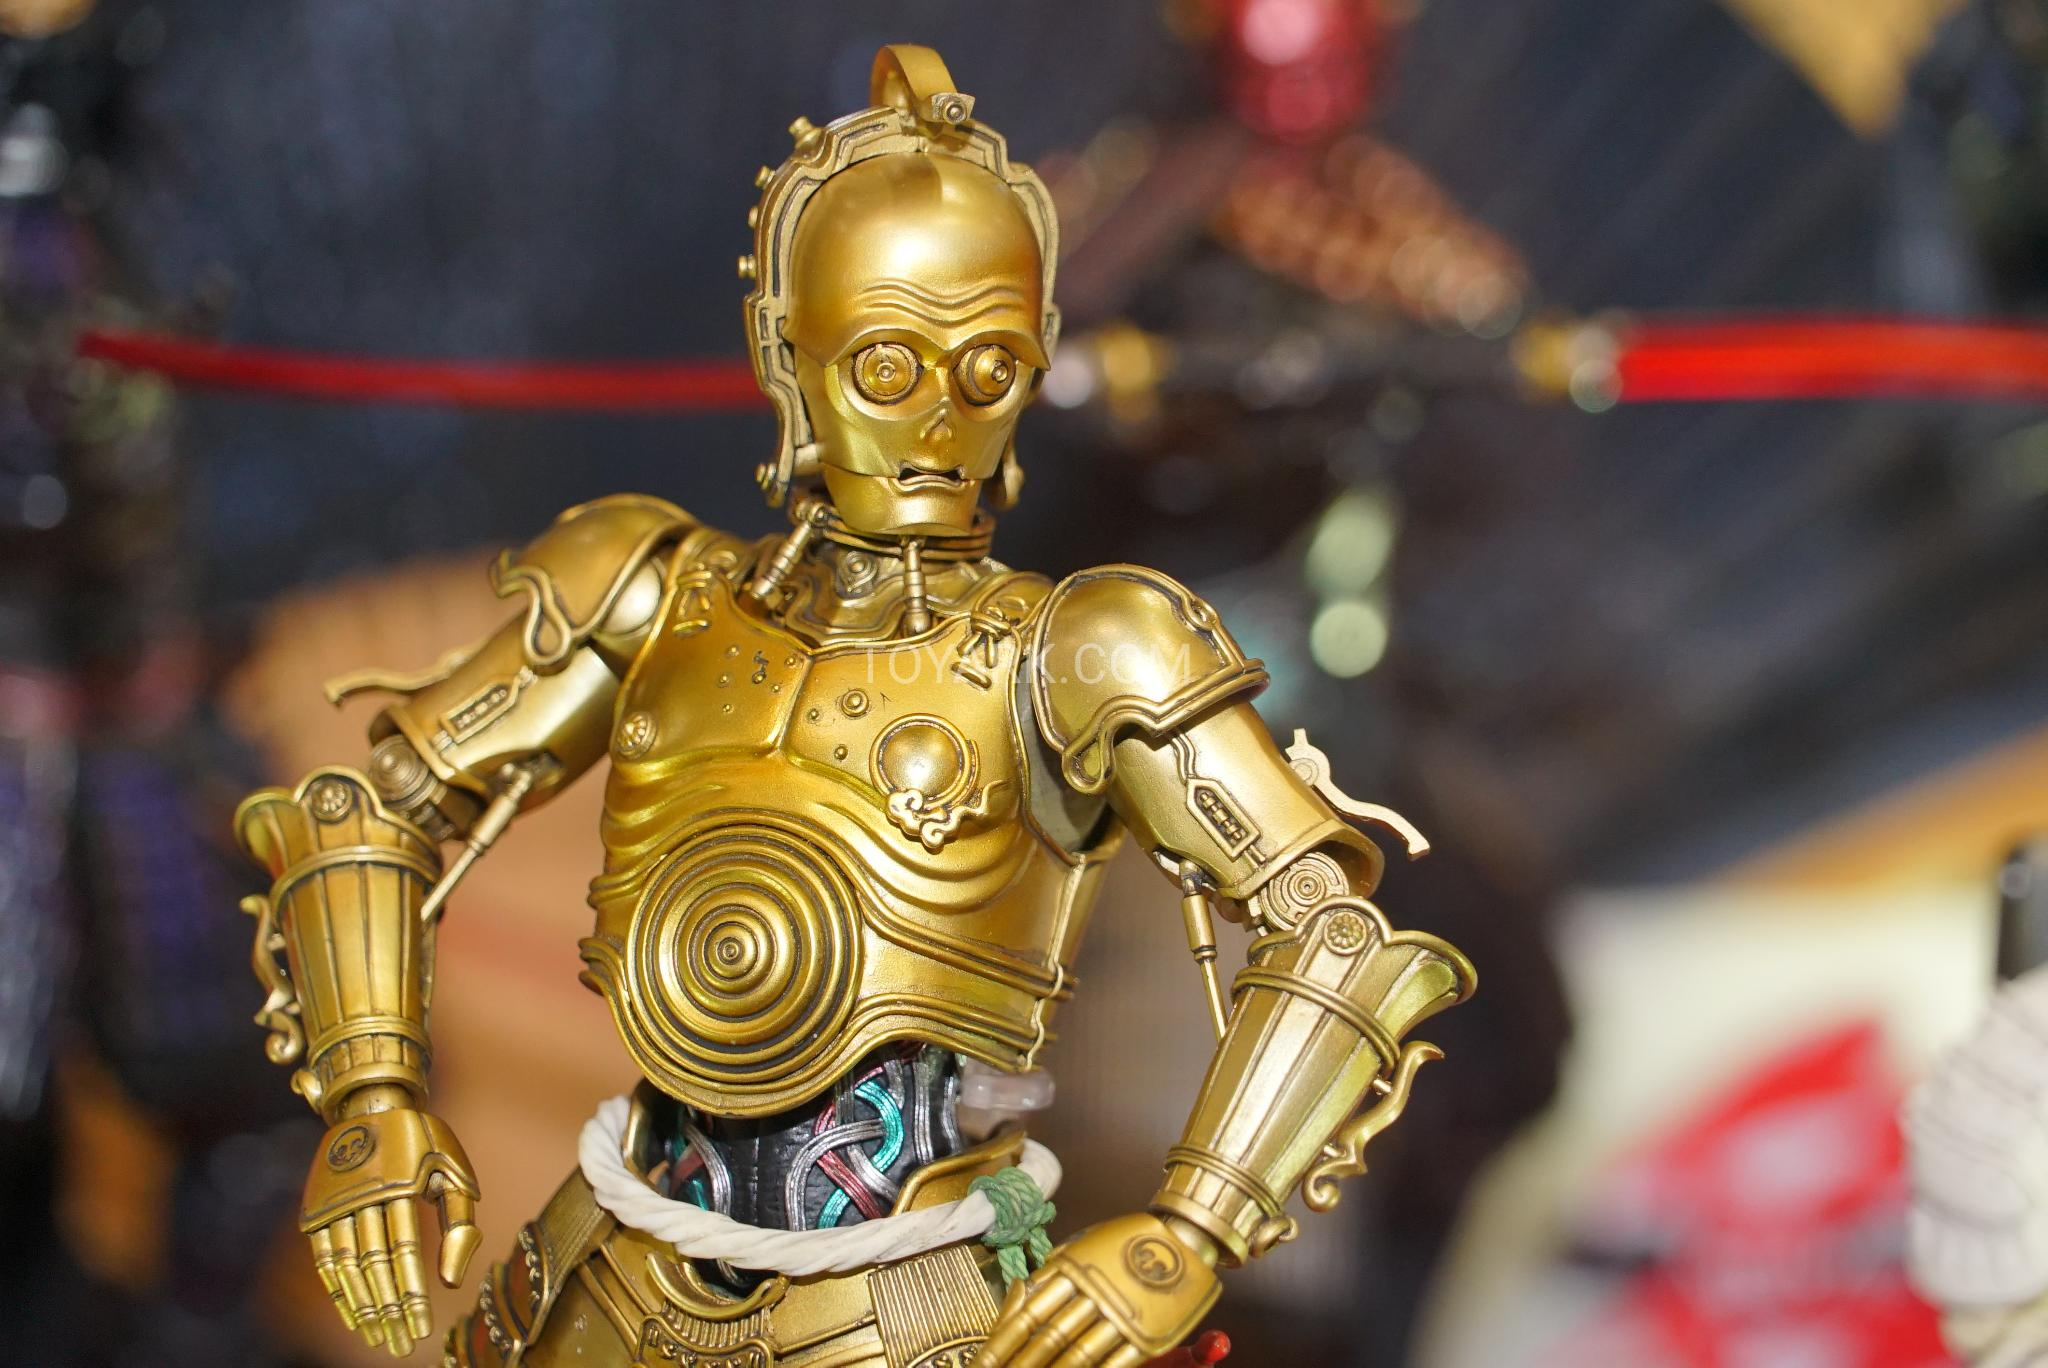 NEW YORK COMIC CON 2018 NYCC-2018-Tamashii-Nations-Star-Wars-004